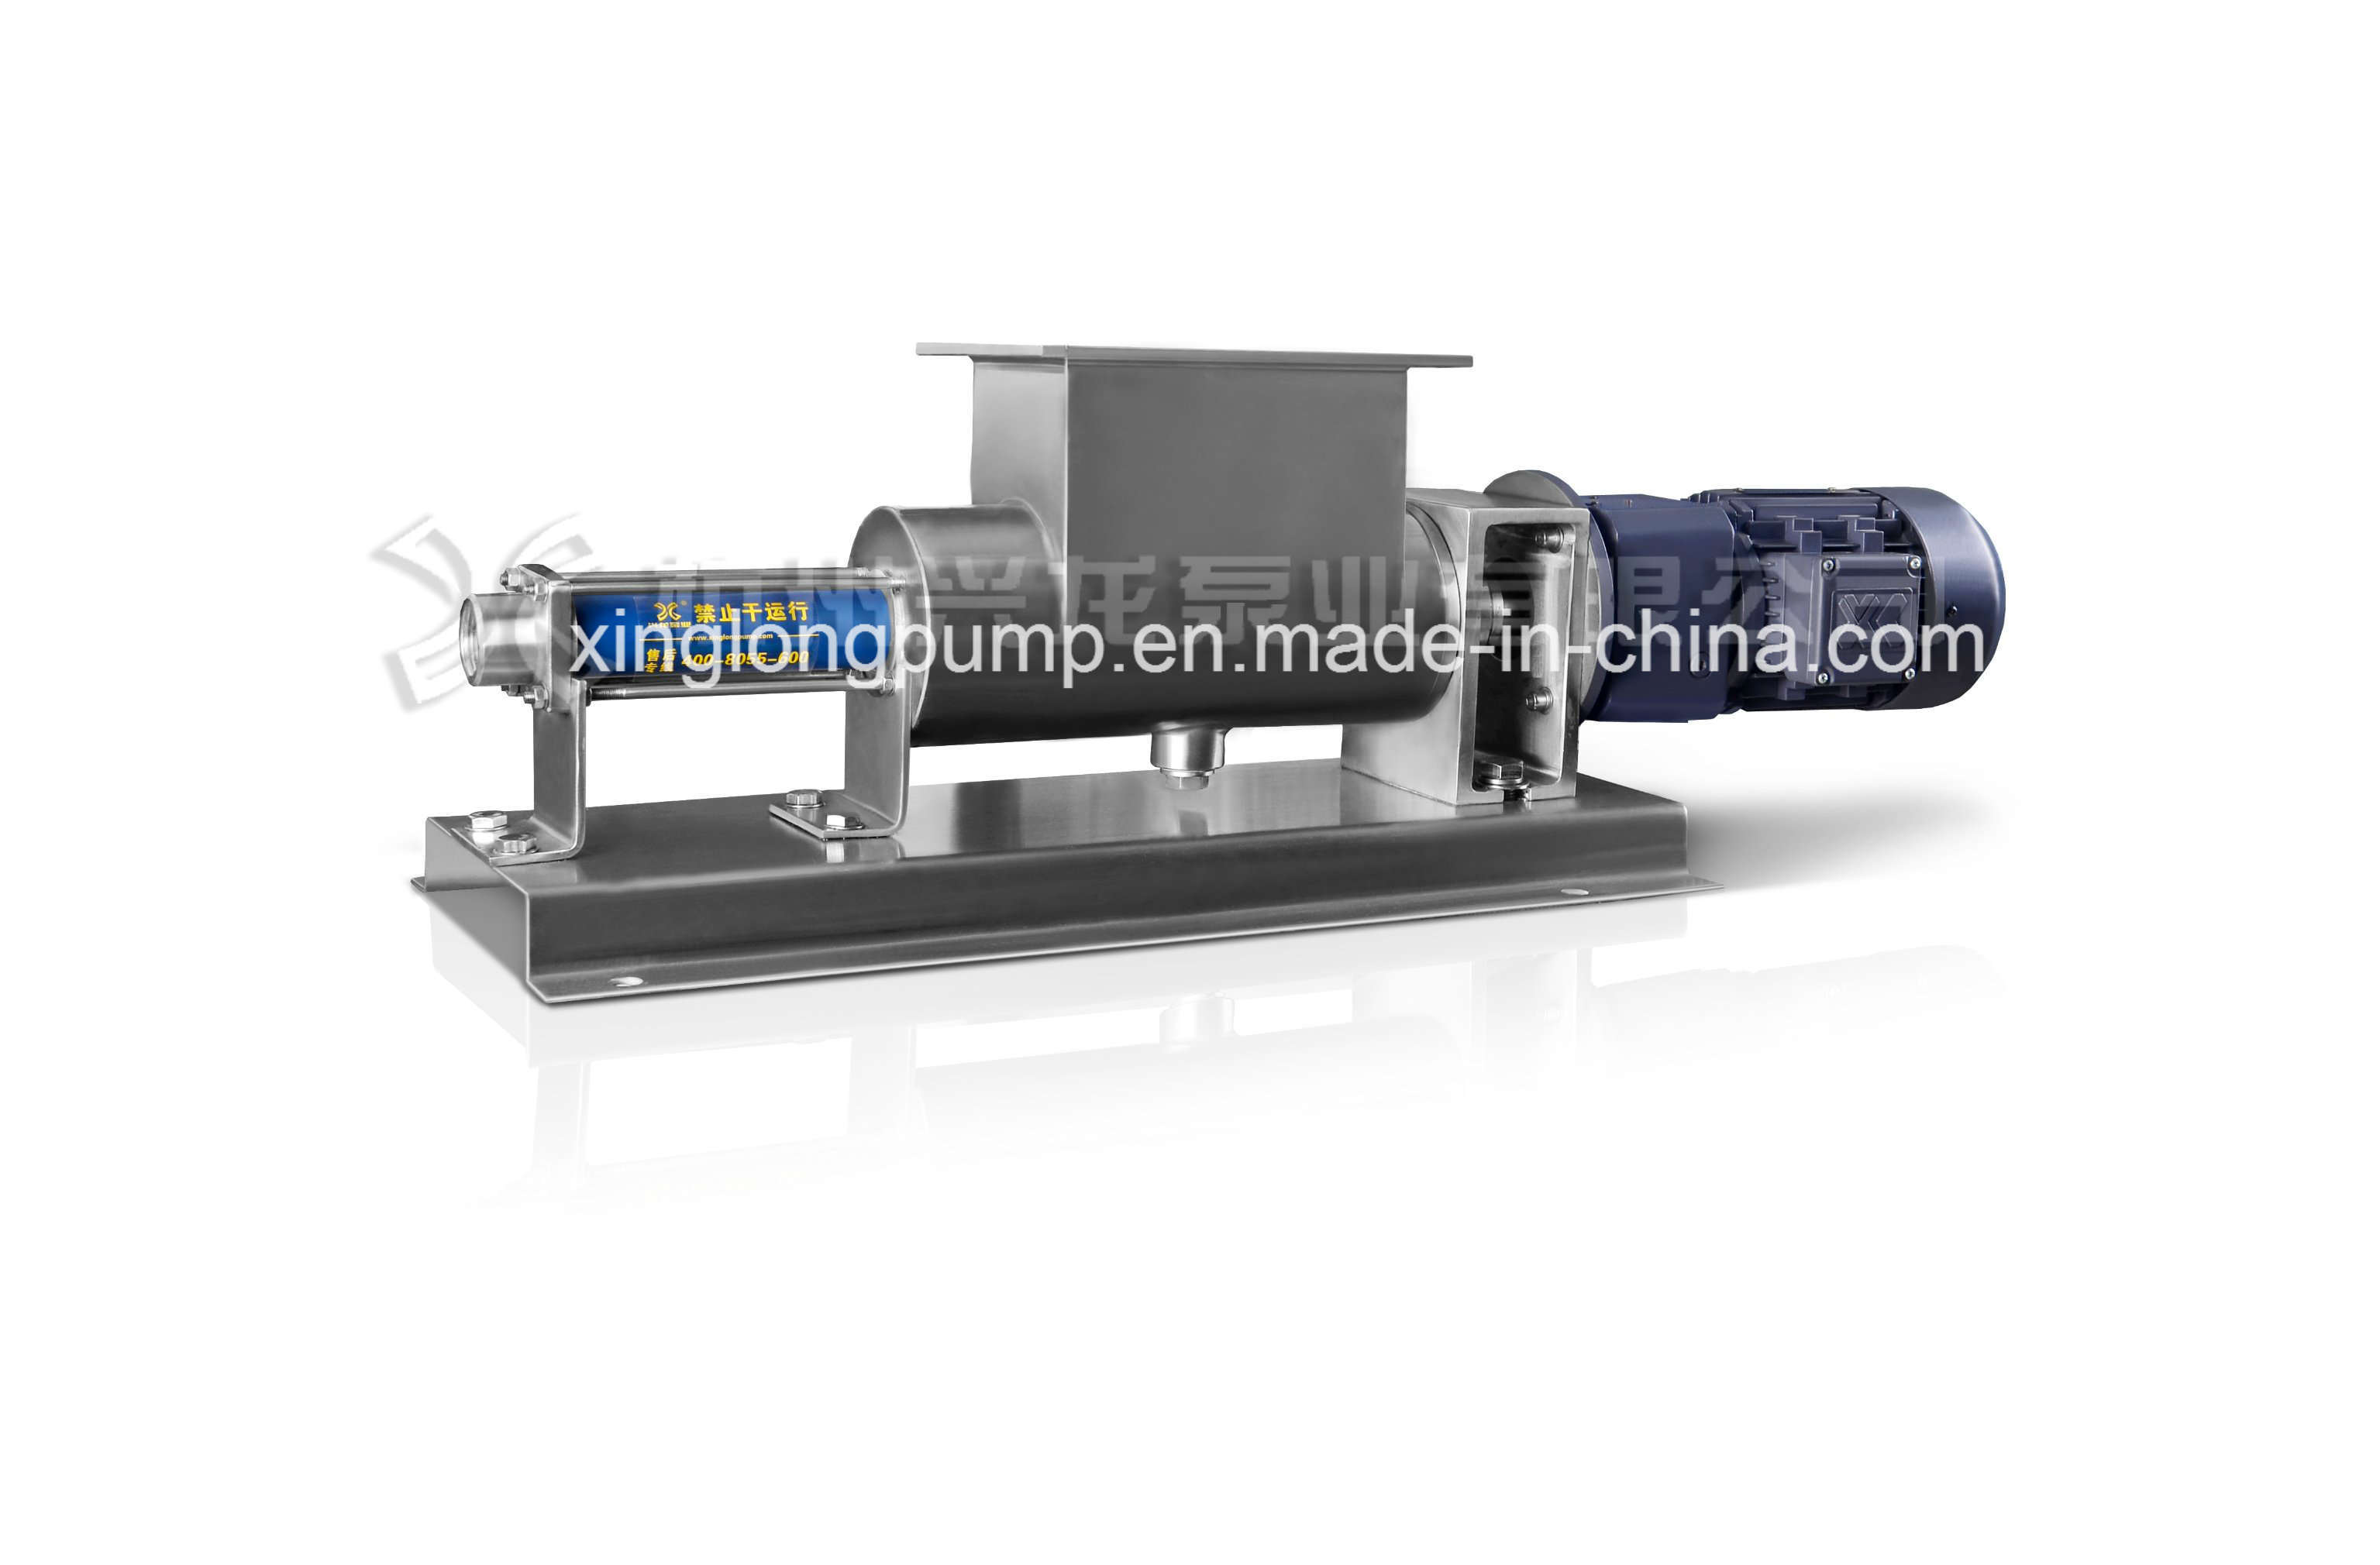 Xinglong Xg Series Open Hopper Mono Screw Pump Used in Tomato Ketchup/Mayonnaise Processing